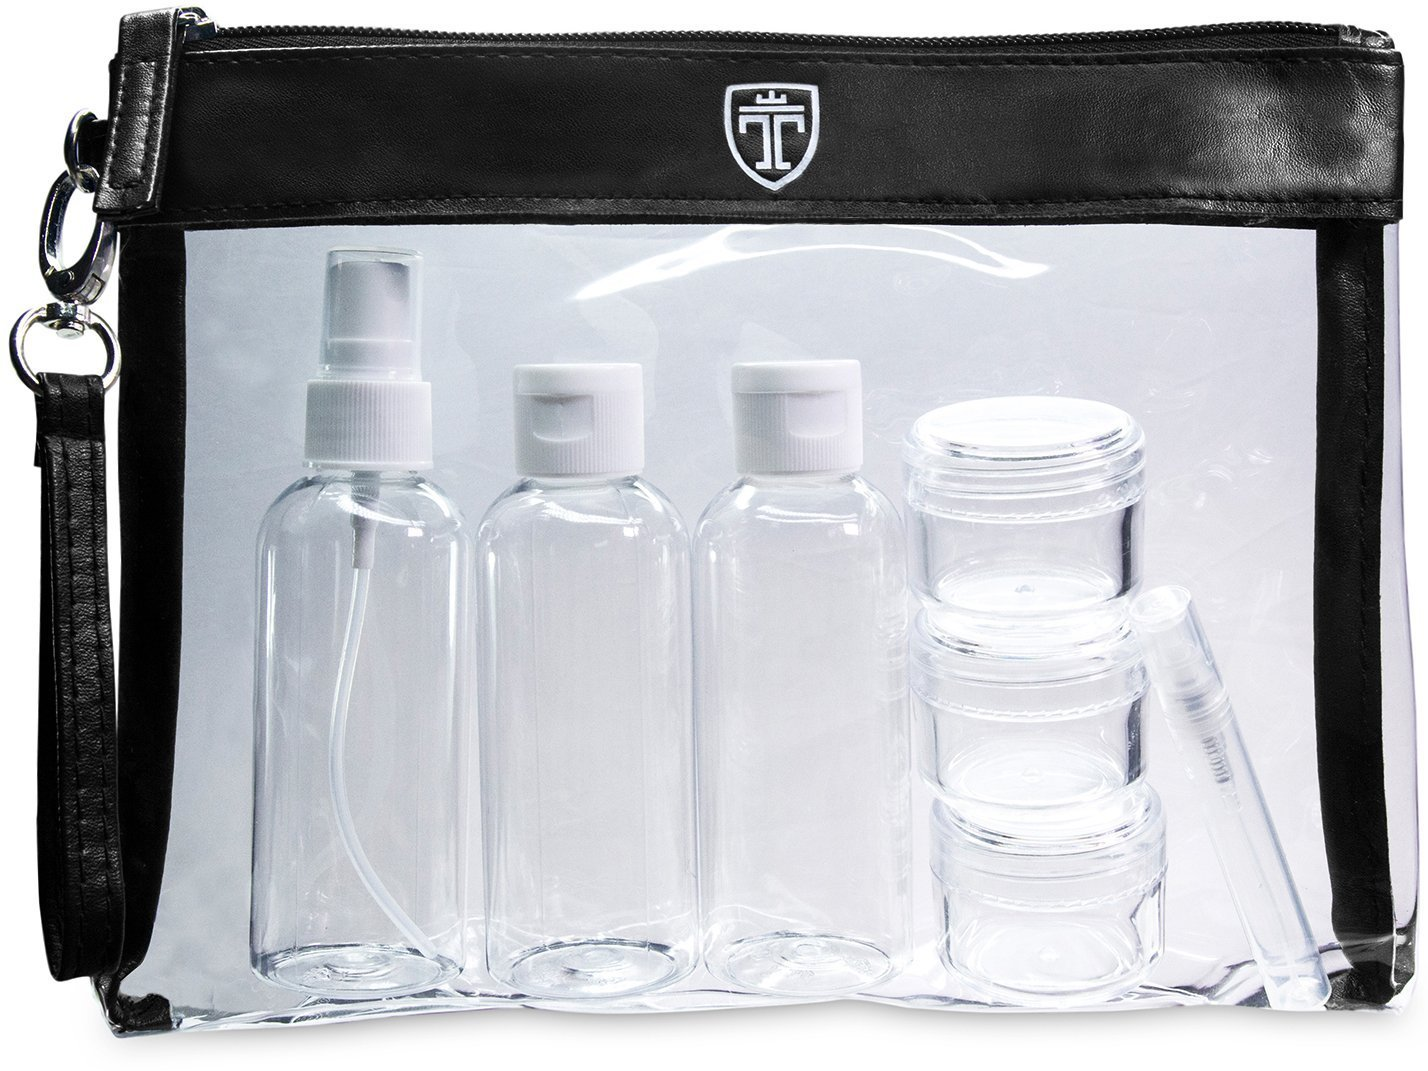 TRAVANDO Clear Toiletry Bag with 7 Bottles (max.3.38oz) | TSA Travel Set for Liquids | Transparent Zipper Bag for Cosmetics | Plastic PVC Airport Airline Security Luggage Organizer Pouch | Wash Kit by TRAVANDO